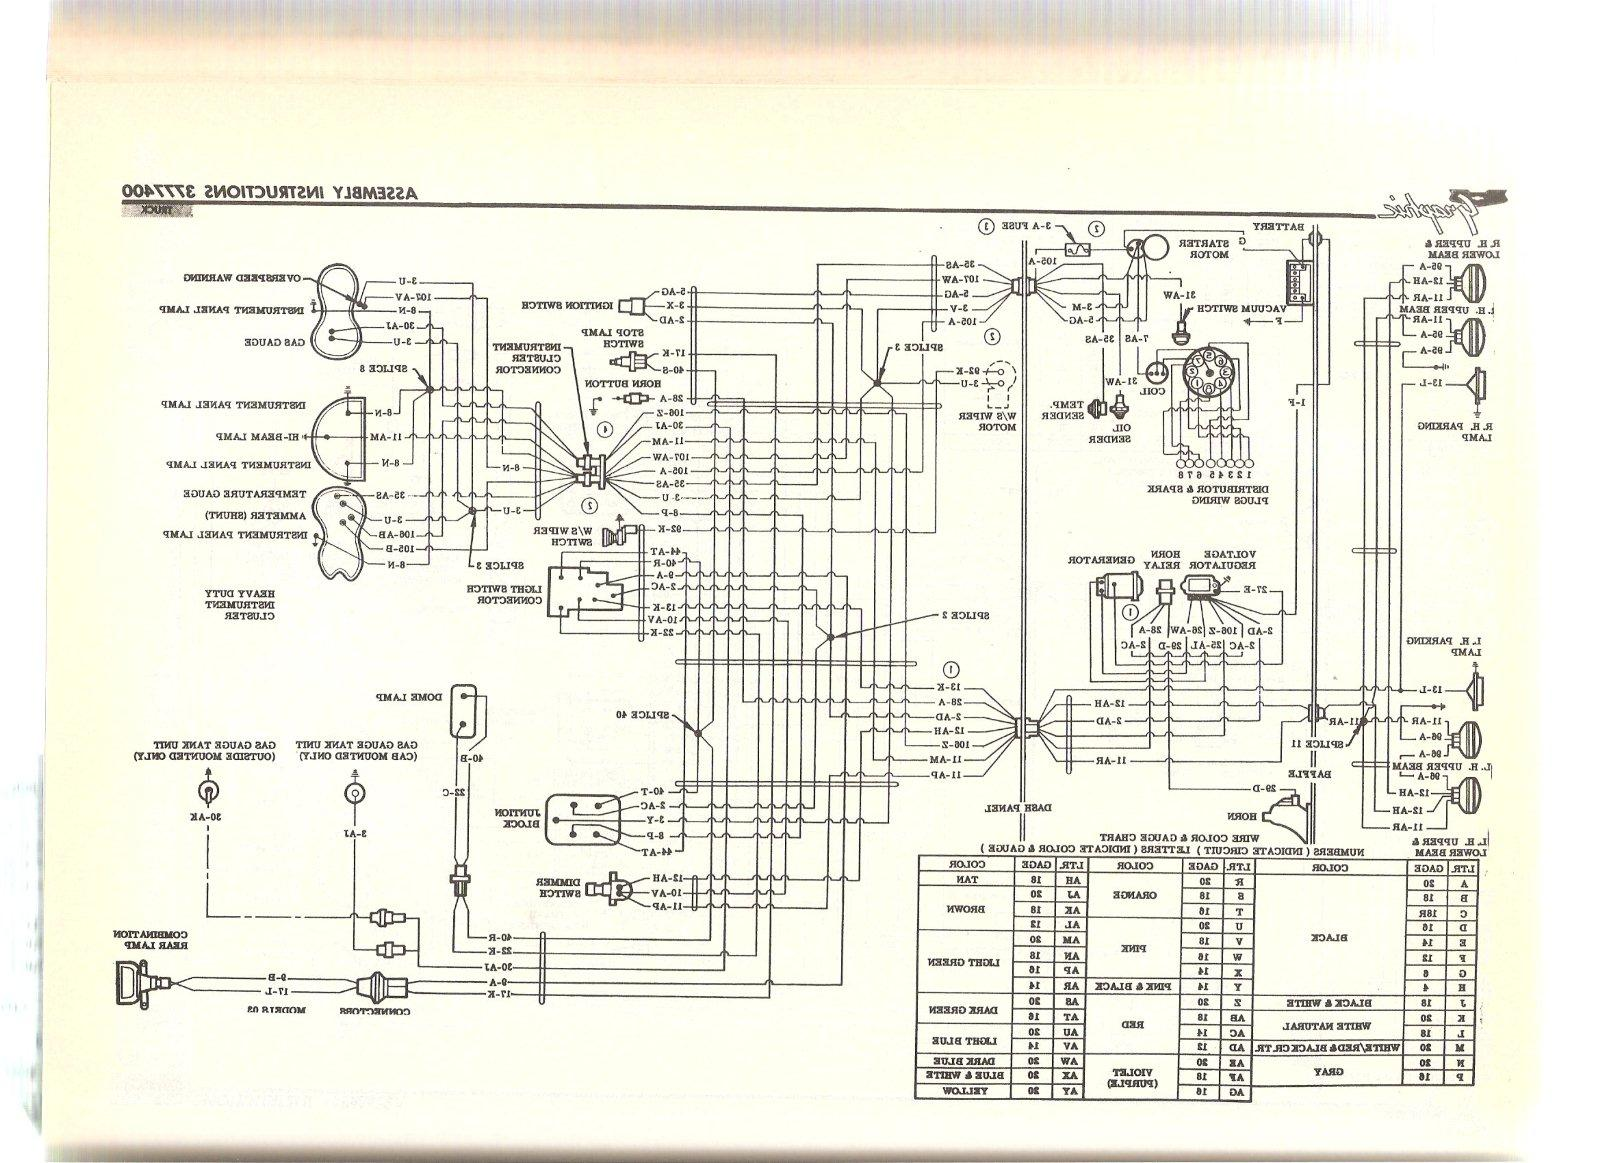 1950 dodge coronet wiring diagram download wiring diagrams u2022 rh osomeweb com 1950 dodge wiring diagram 1950 dodge wiring diagram